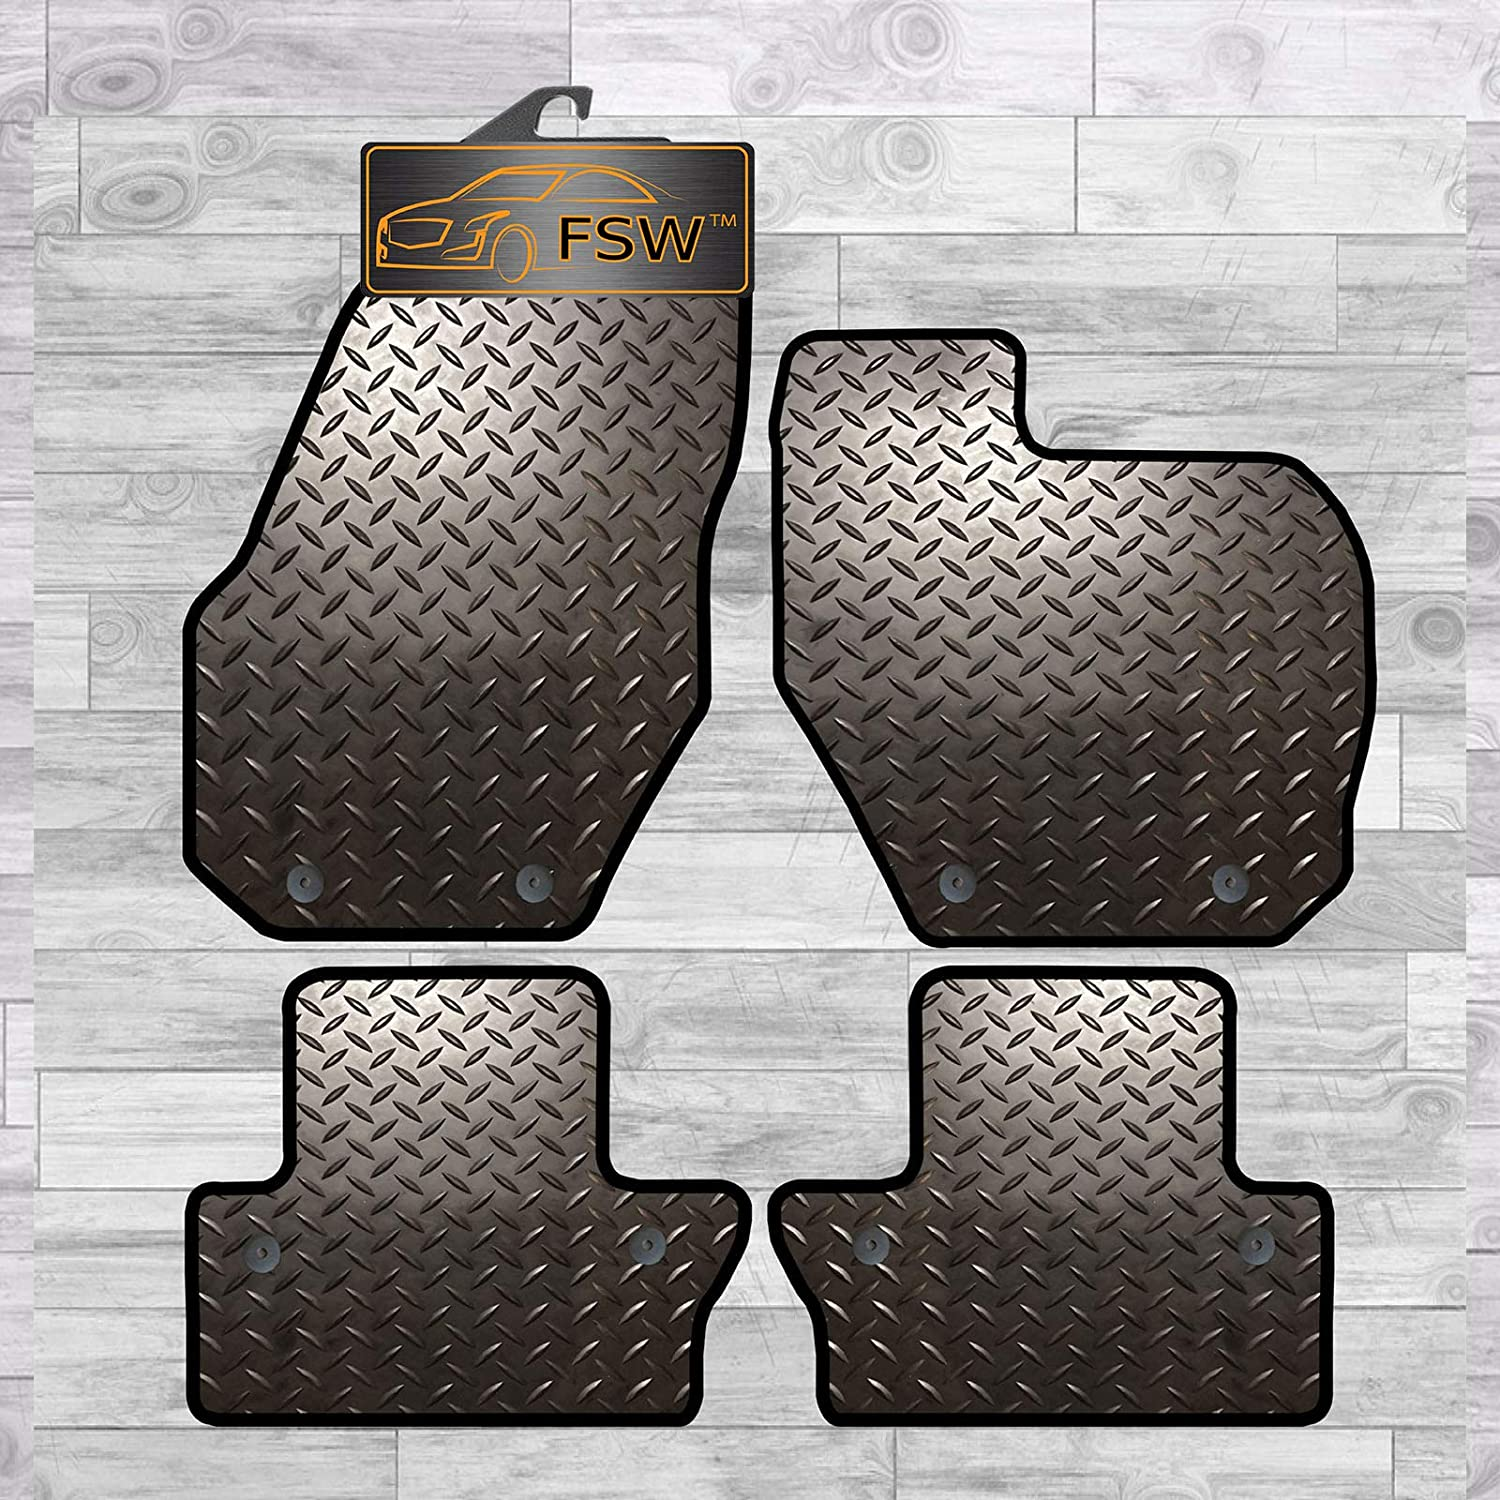 FSW V60 With Clips 2010-2018 Manual Tailored 3MM Waterproof Rubber Heavy Duty Car Floor Mats